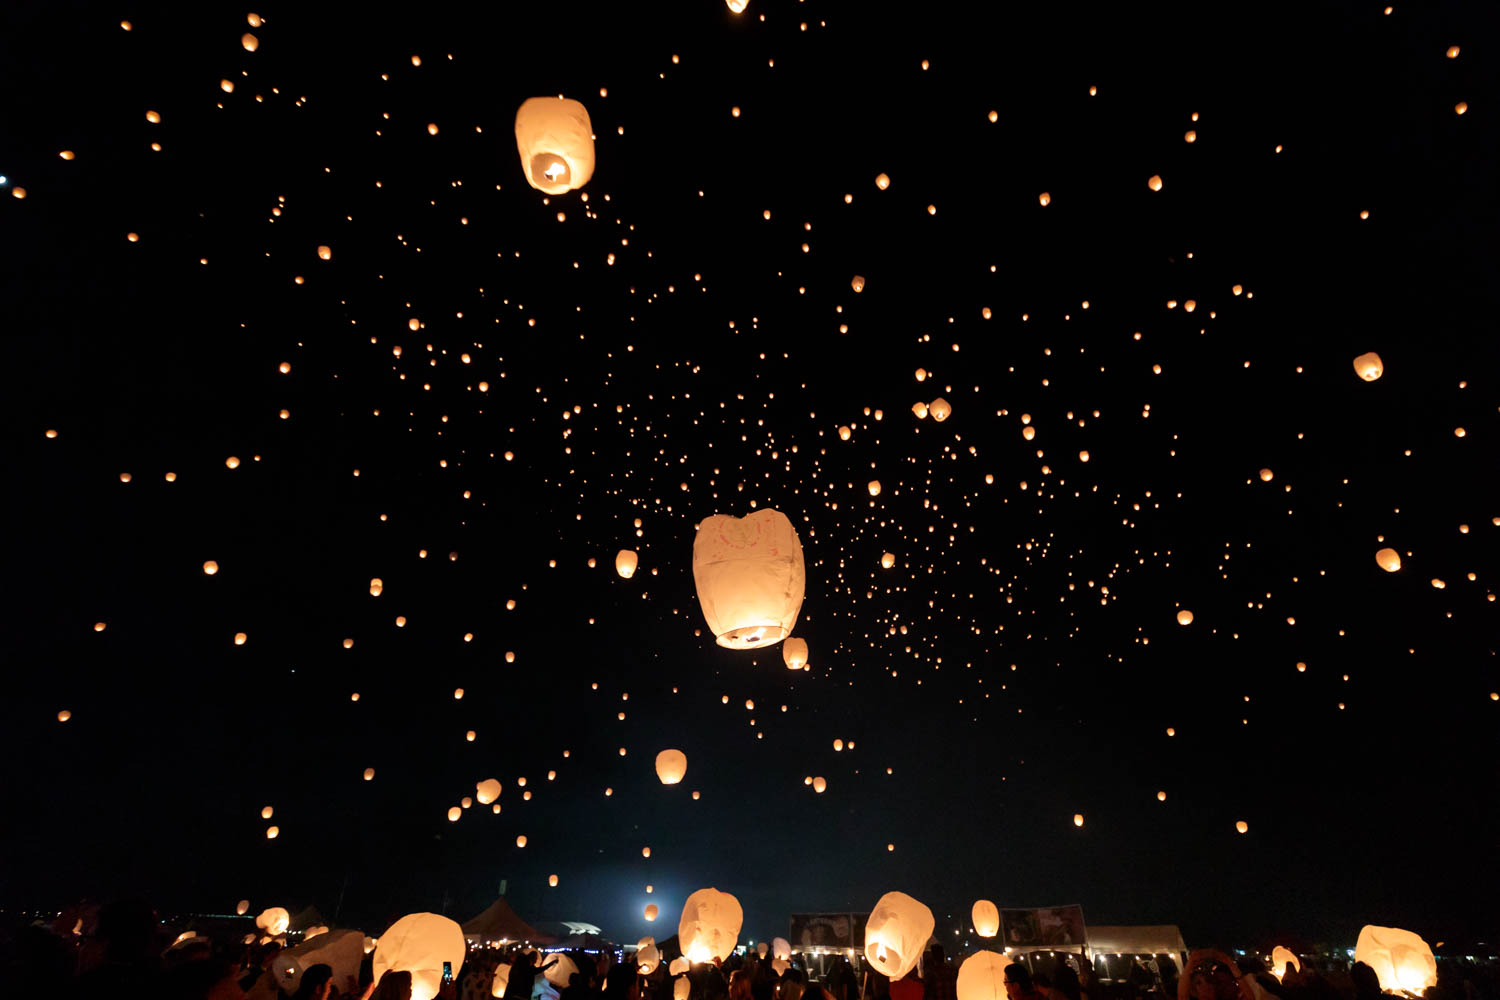 A night sky with lanterns